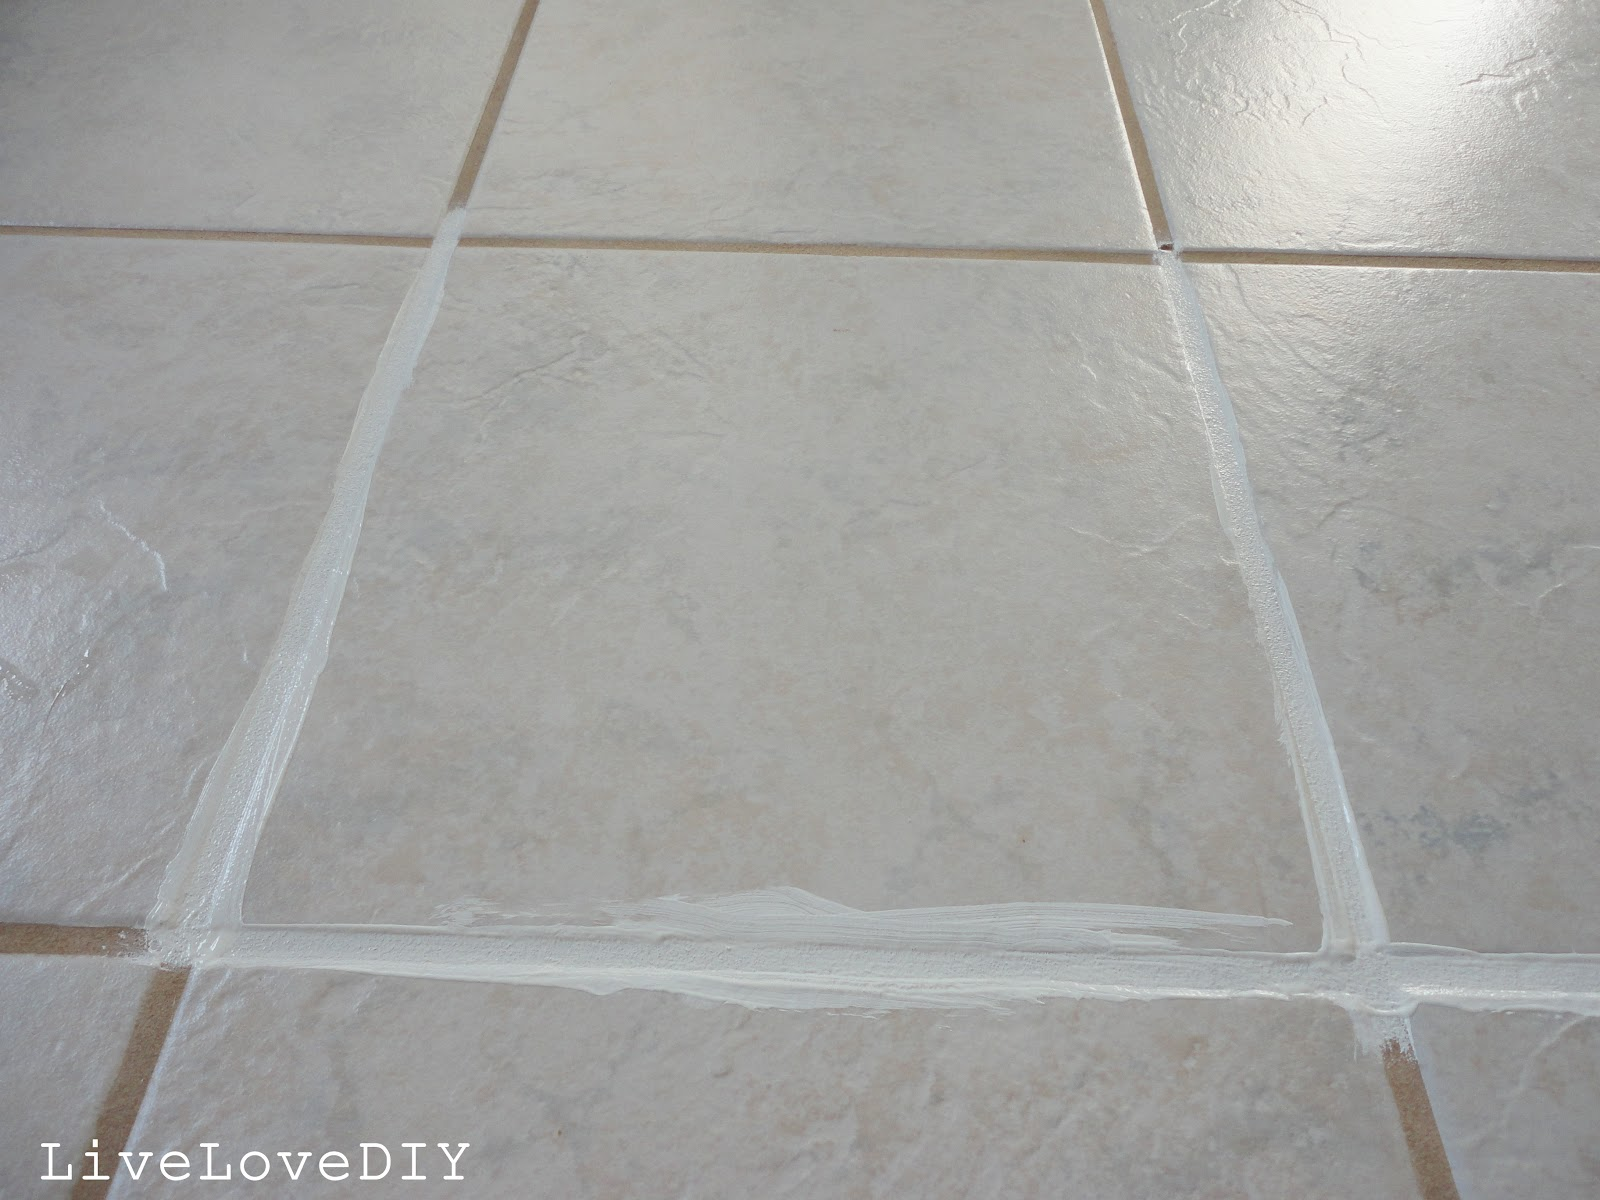 Livelovediy how to restore dirty tile grout dailygadgetfo Gallery